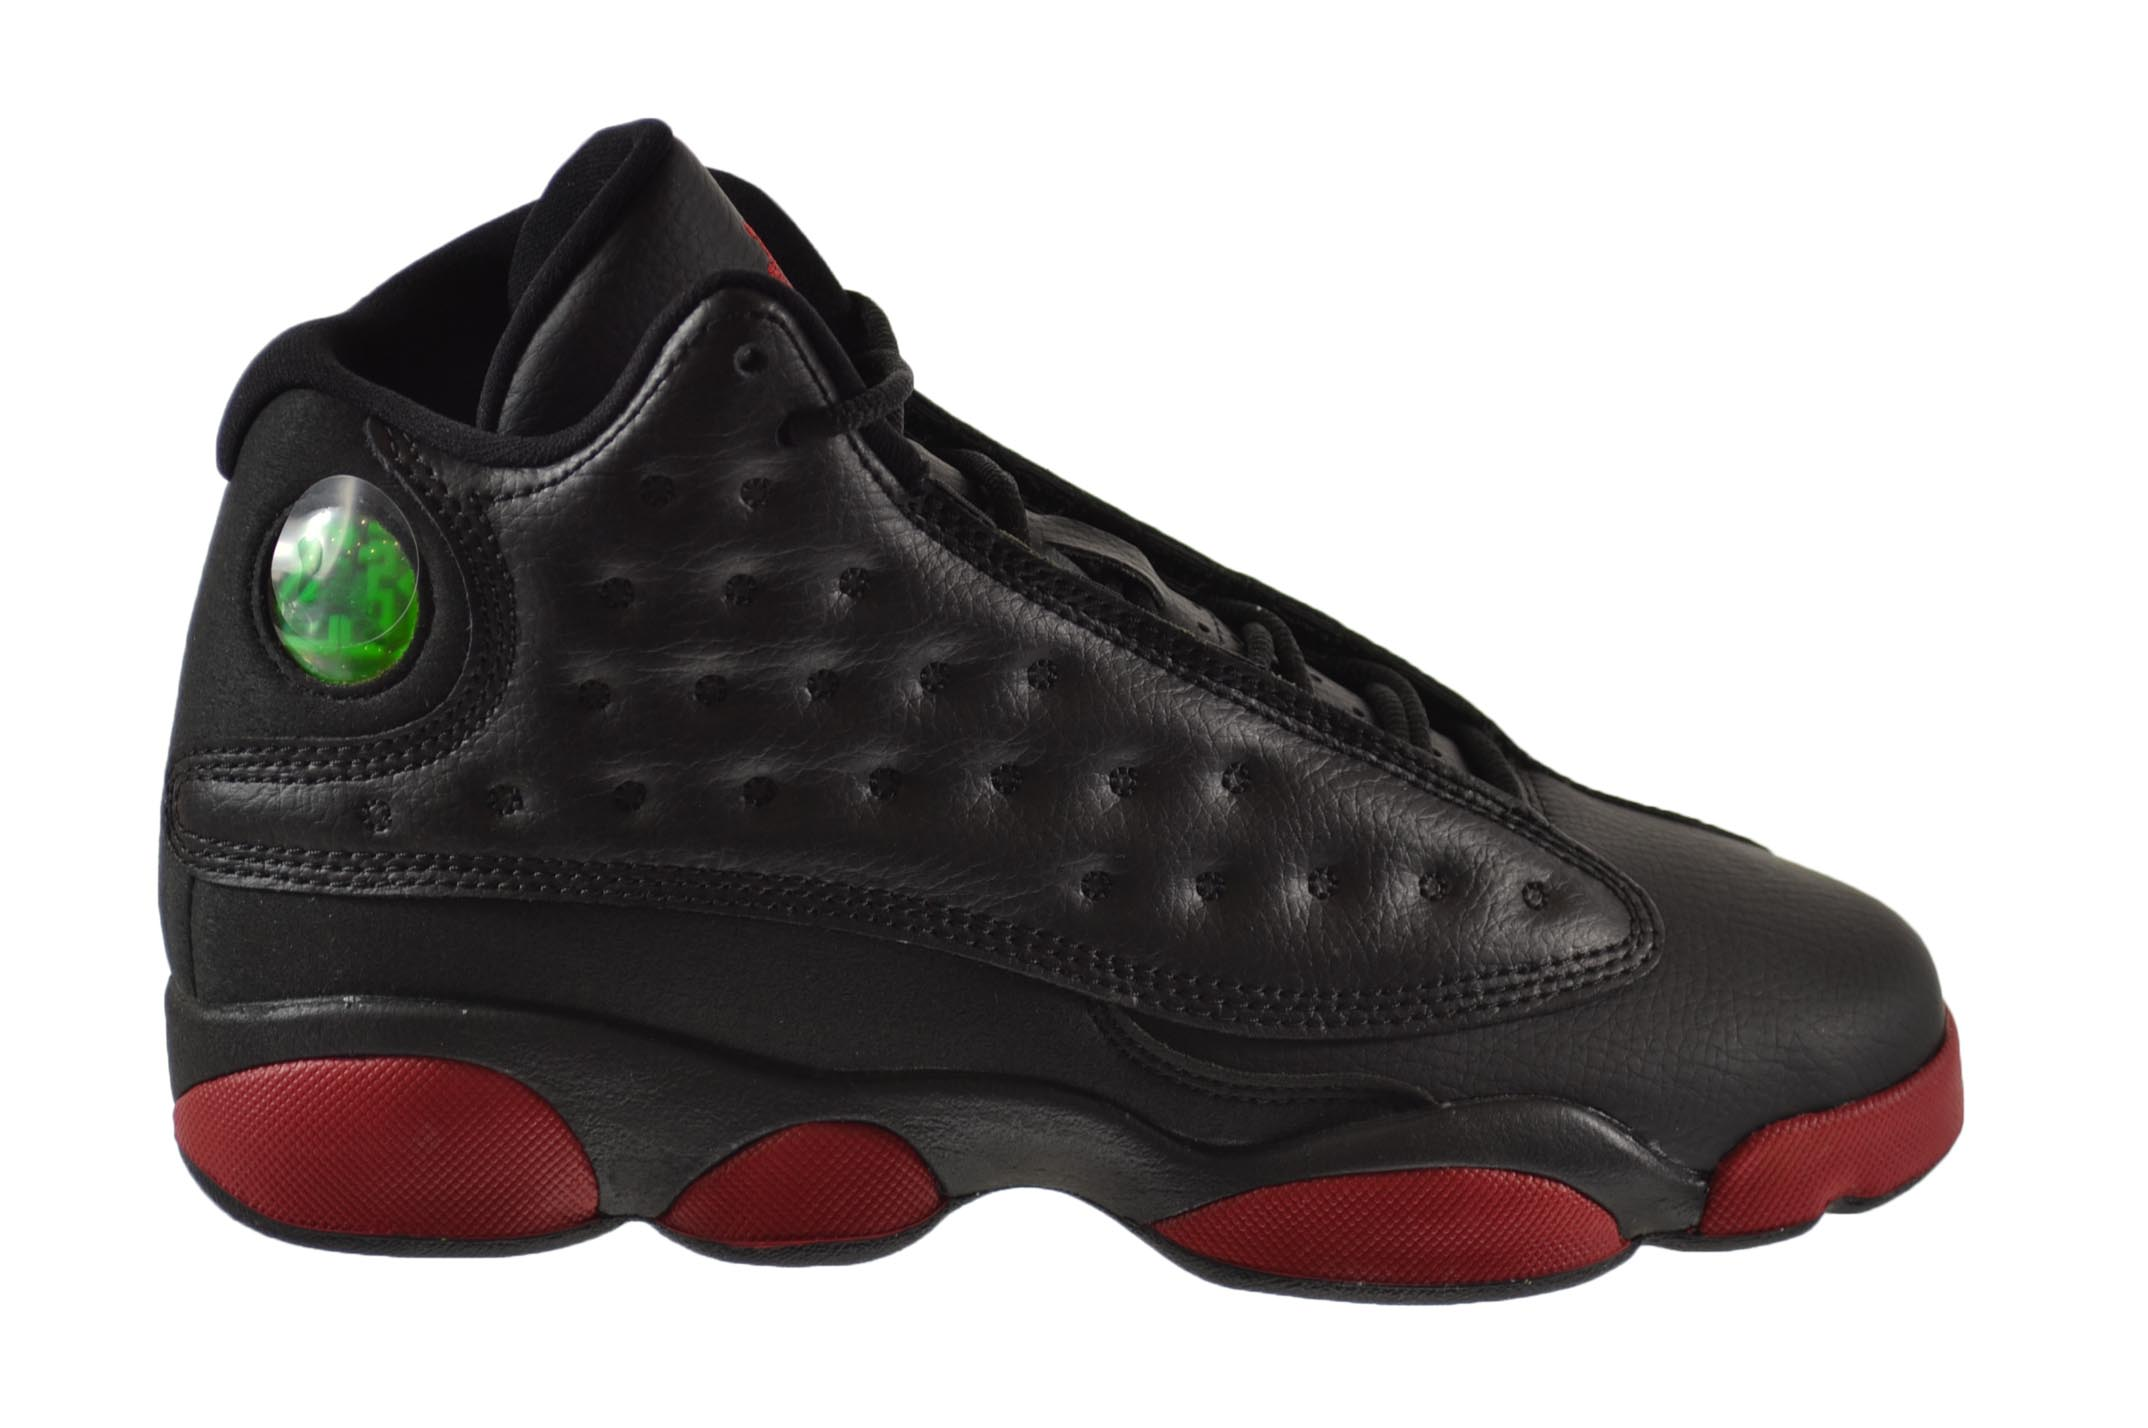 quality design fd538 8e412 ... discount air jordan 13 retro bg big kids shoes black gym red 414574 033  9611a a7603